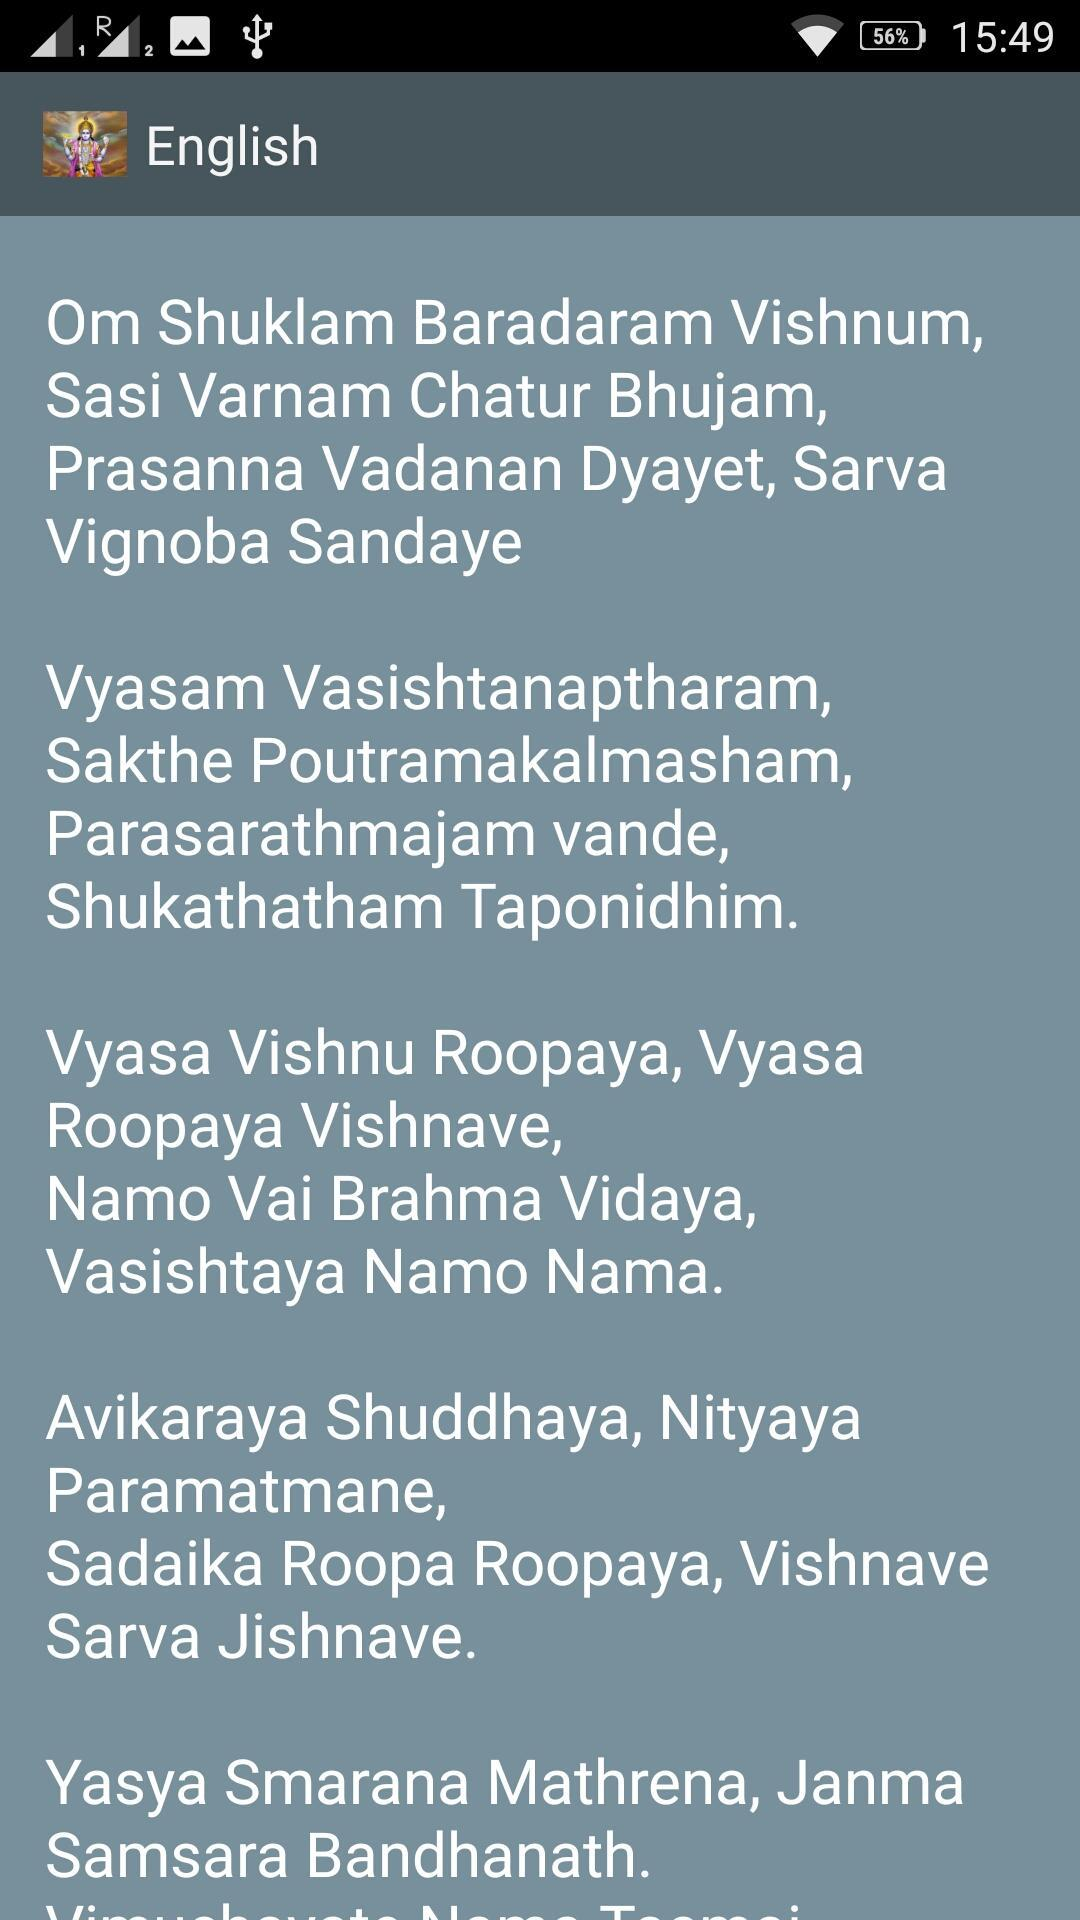 Vishnu Sahasranama Stotram(HD Audio) for Android - APK Download